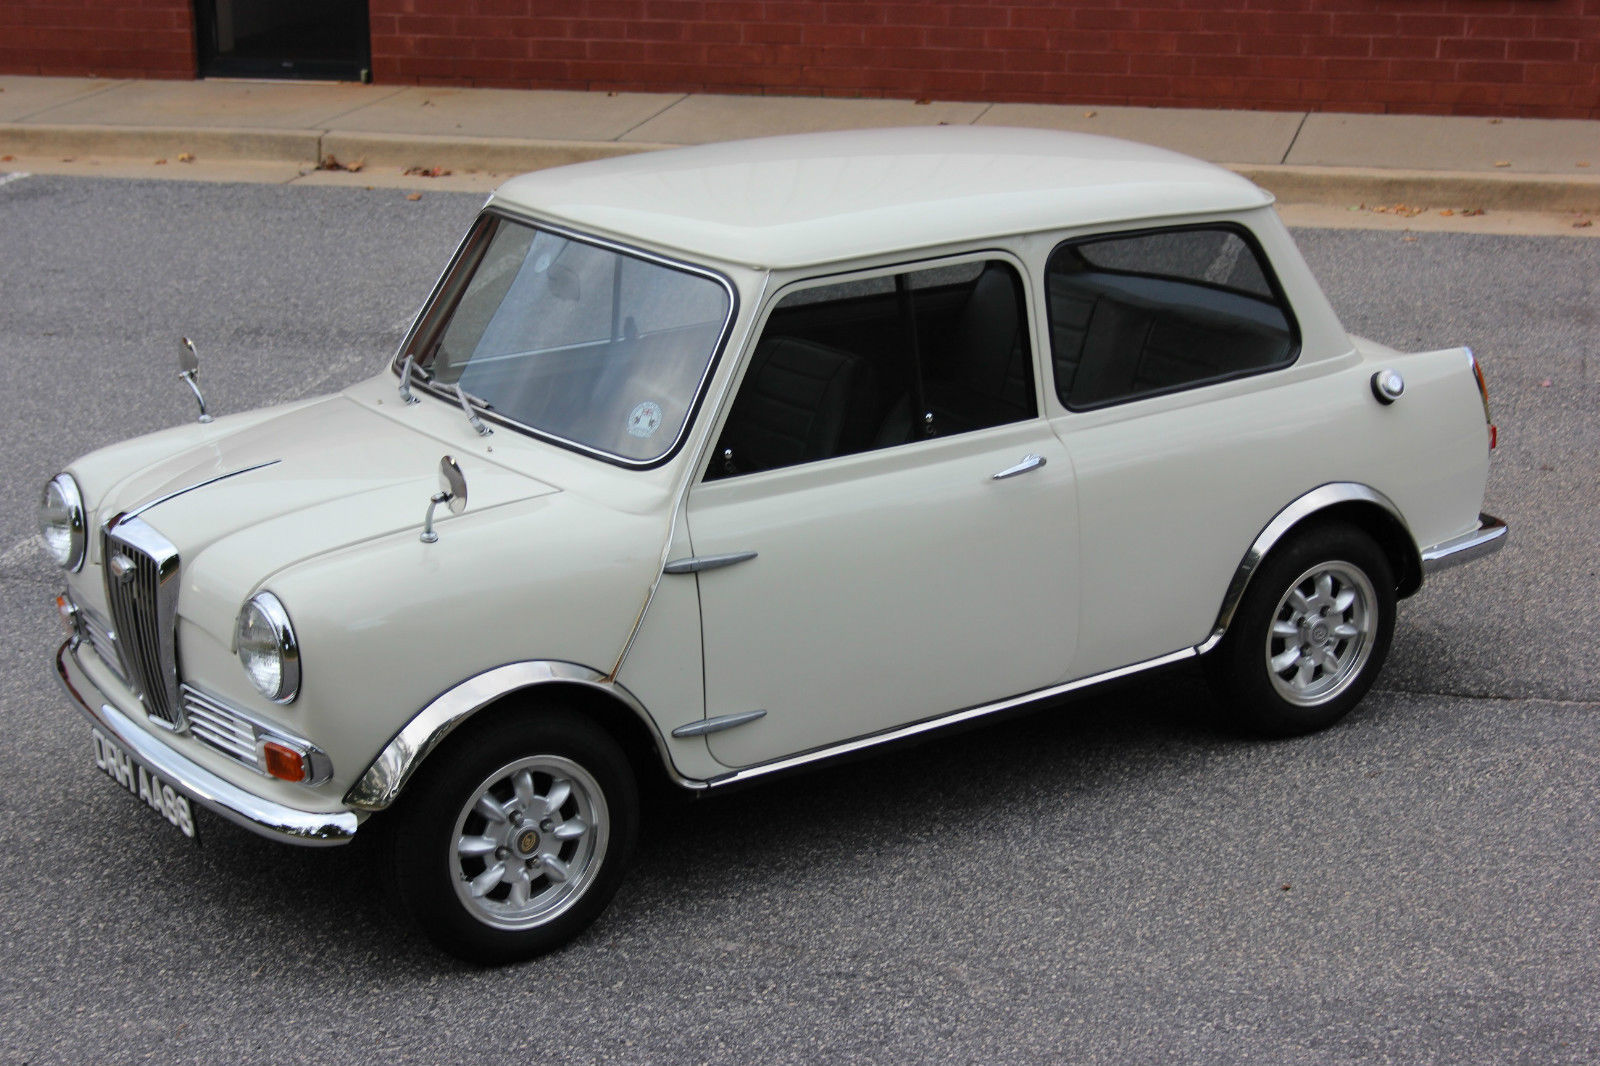 This 1966 Wolseley Hornet MKII Is A Factory Spruced Up Mini And We Think It Needs To Be Hot Rodded